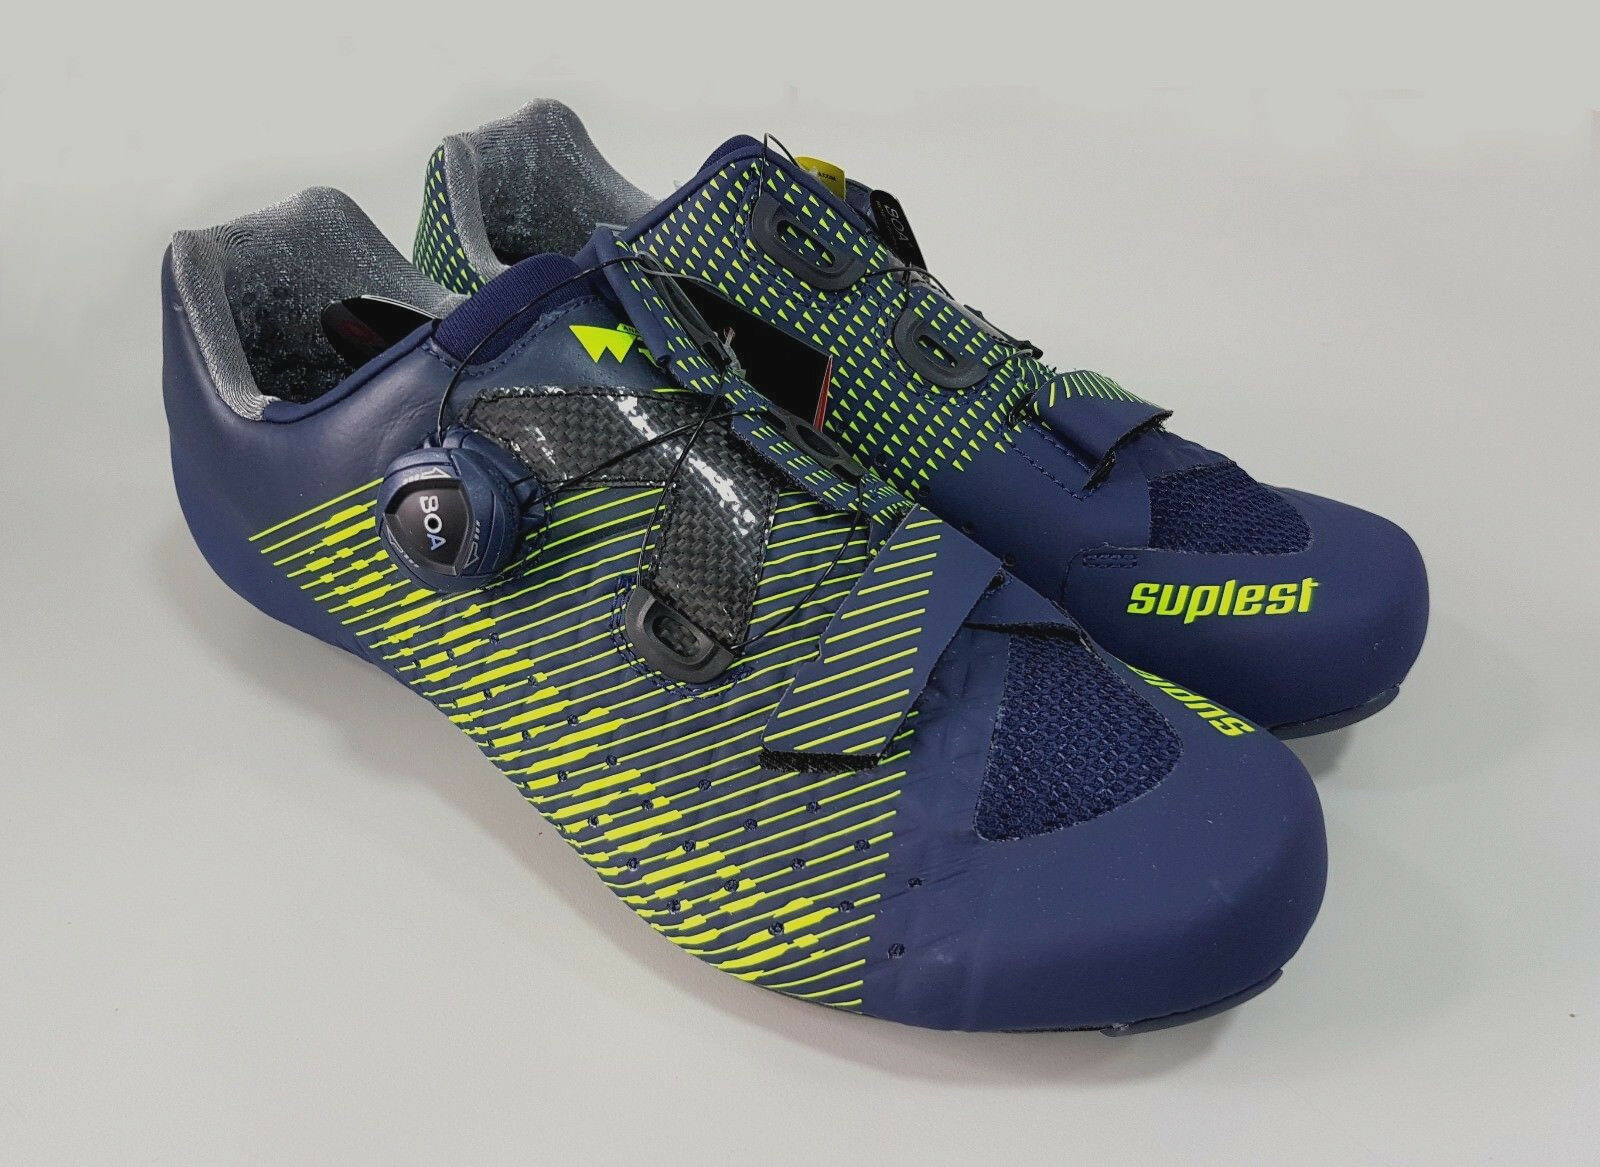 Suplest Edge 3 Performance Comp Cycling Road Bike  shoes Size 43 Navy Lime  check out the cheapest